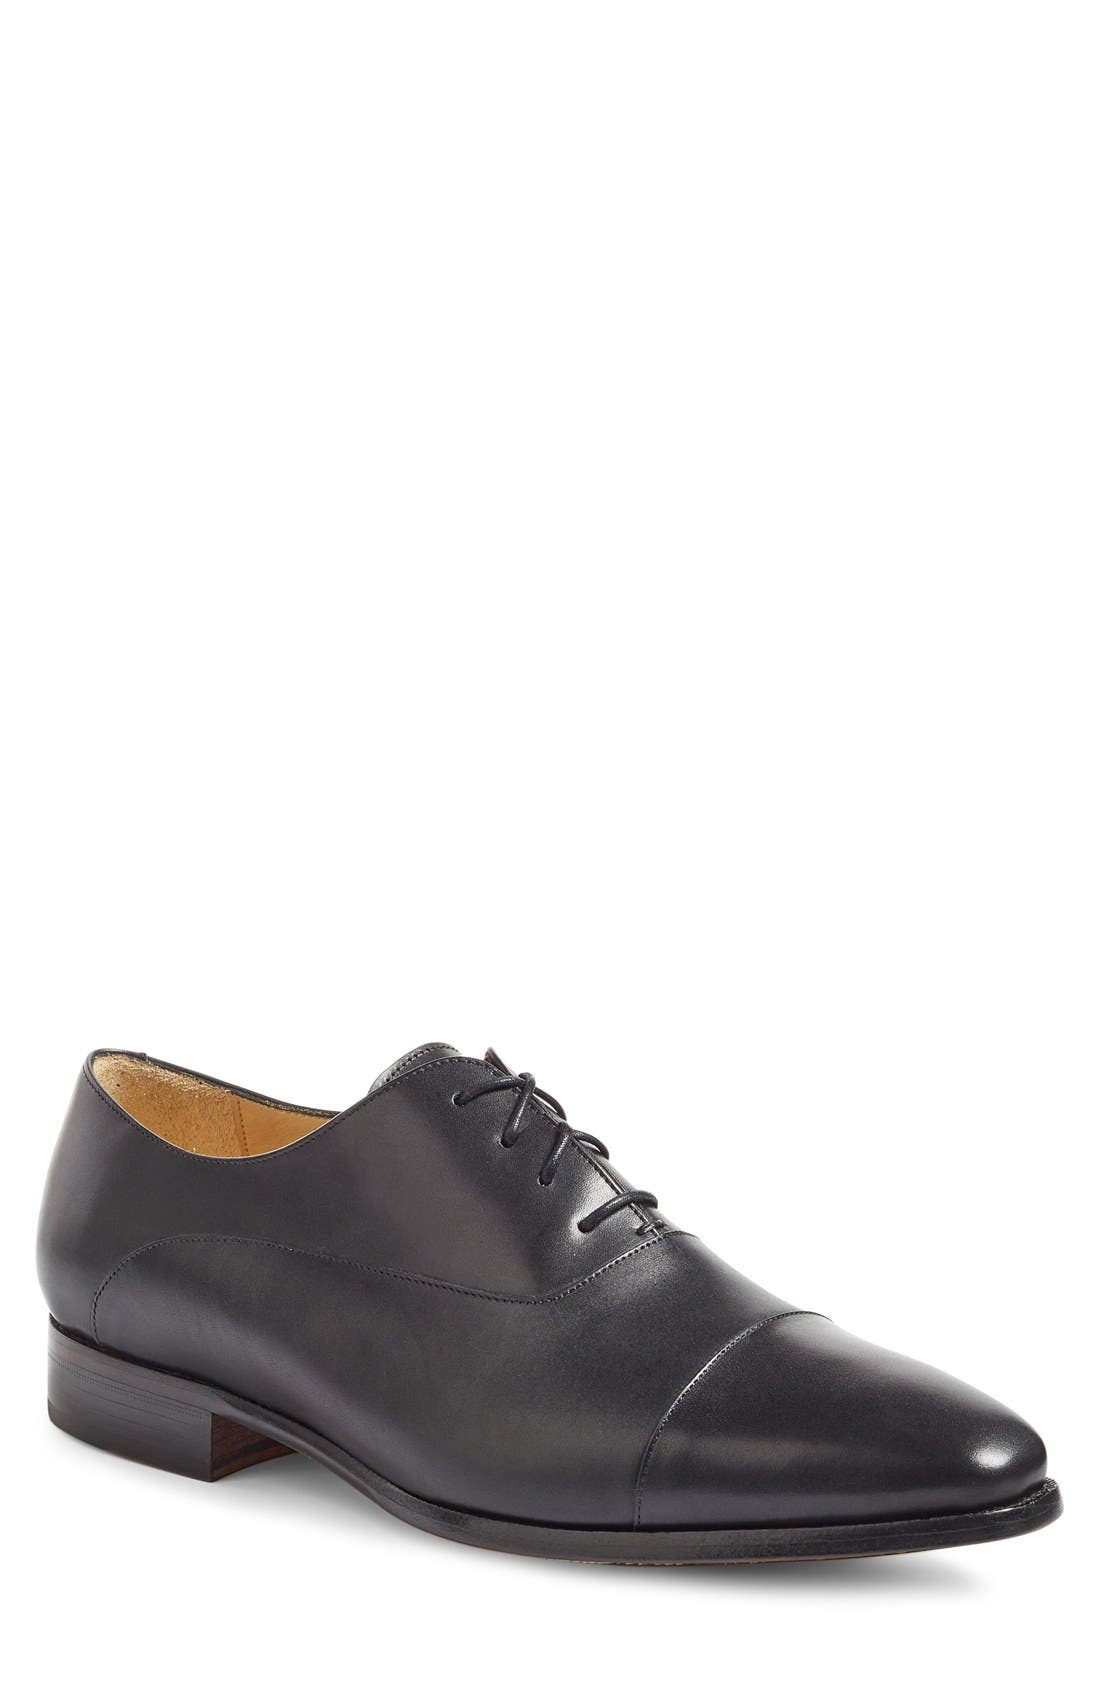 Main Image - Jack Erwin Joe Cap Toe Oxford (Men)